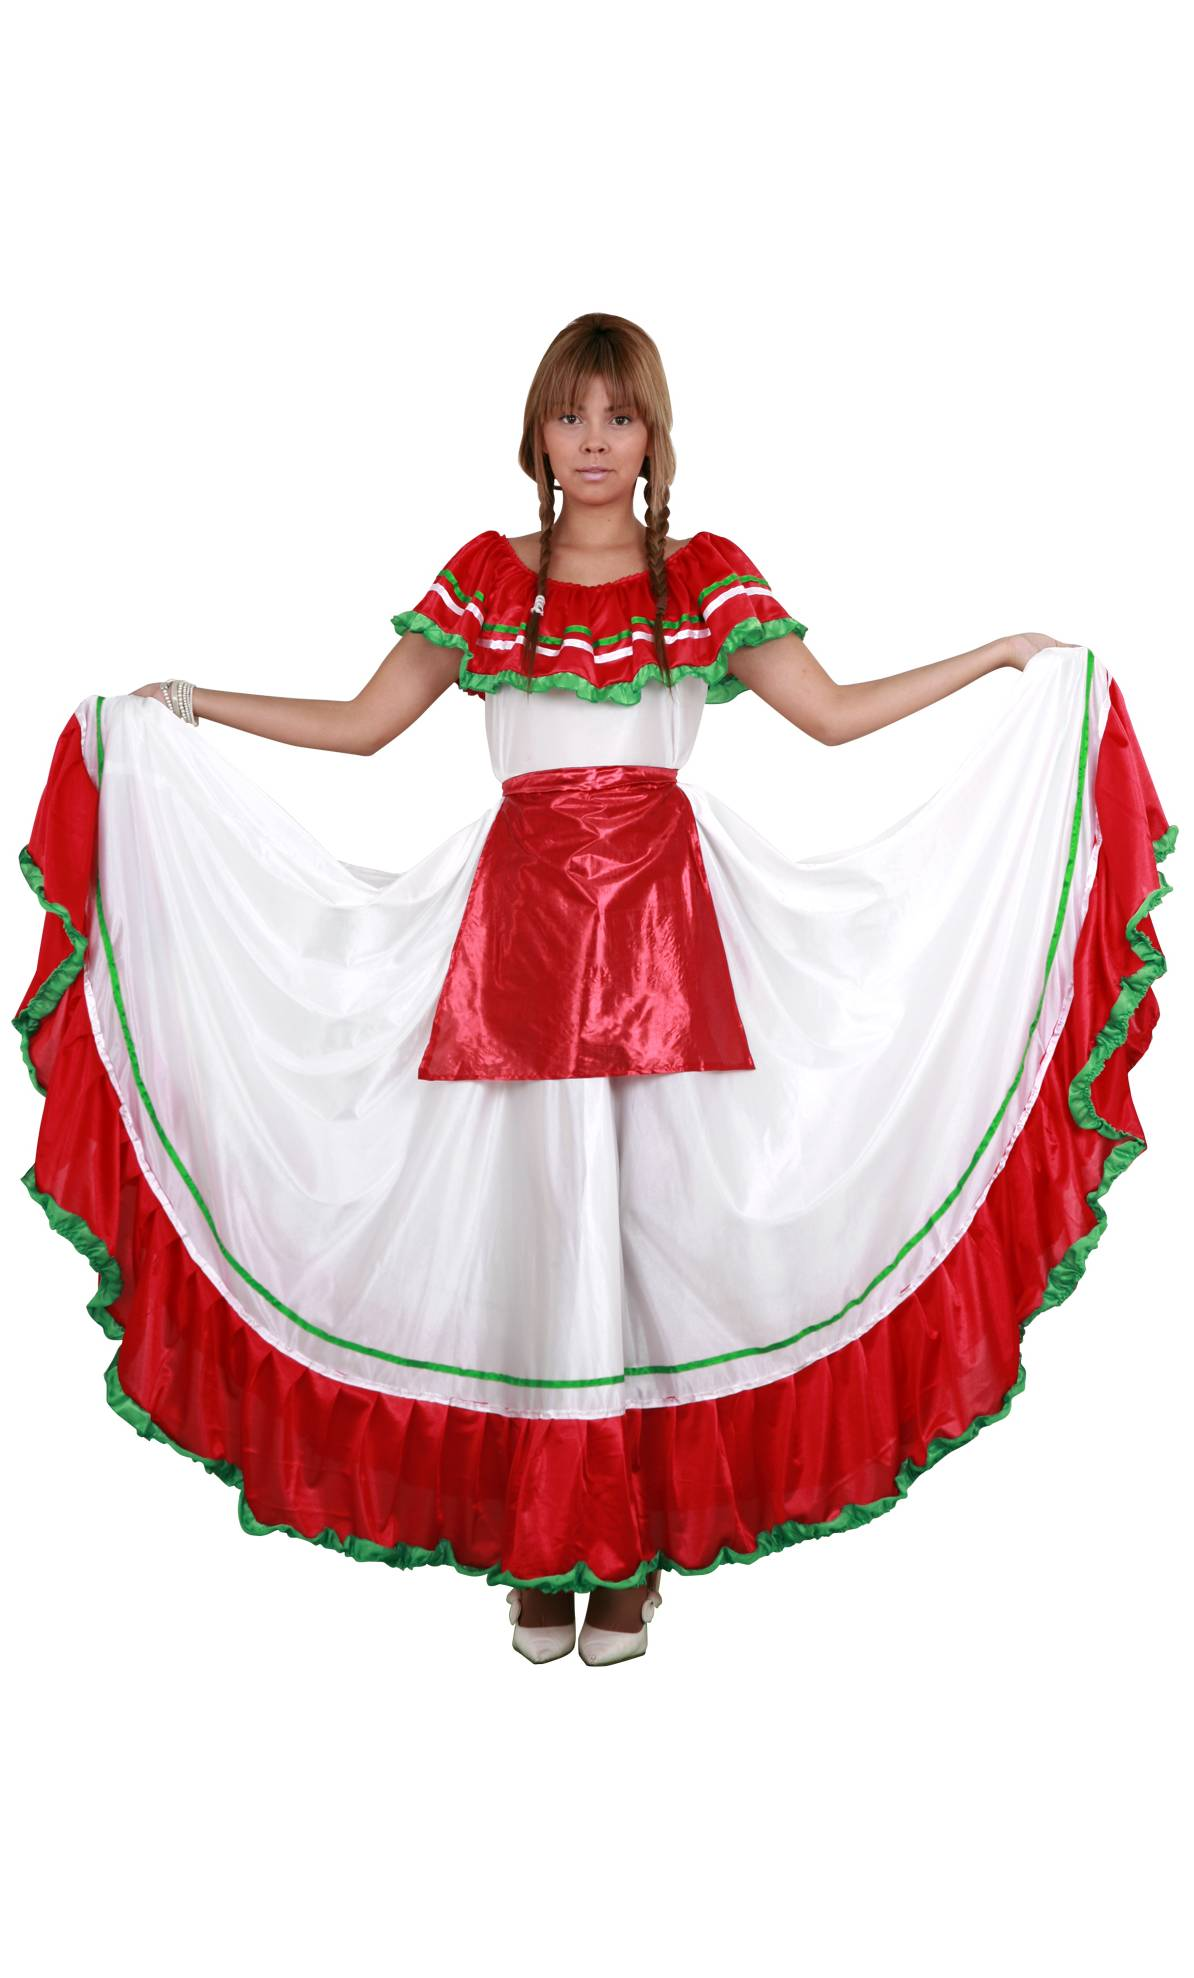 costume mexicaine f2